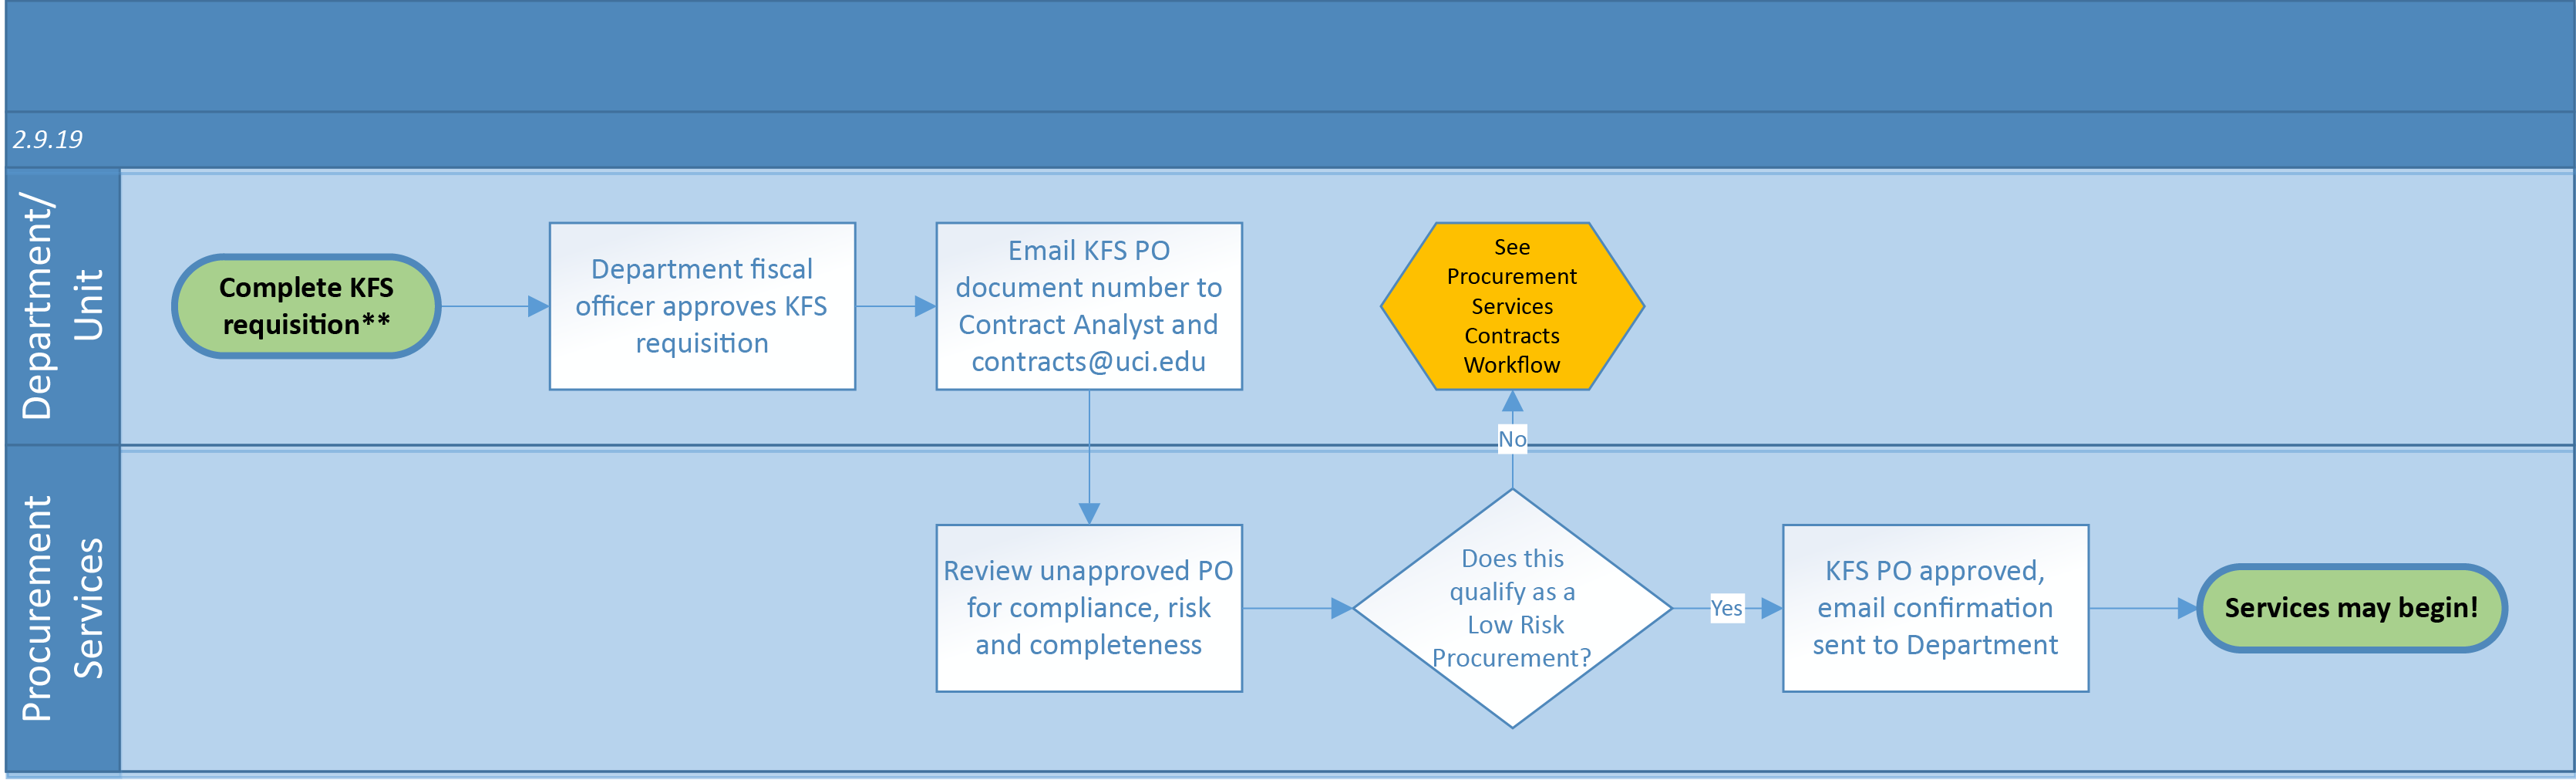 Low Risk Procurements Workflow